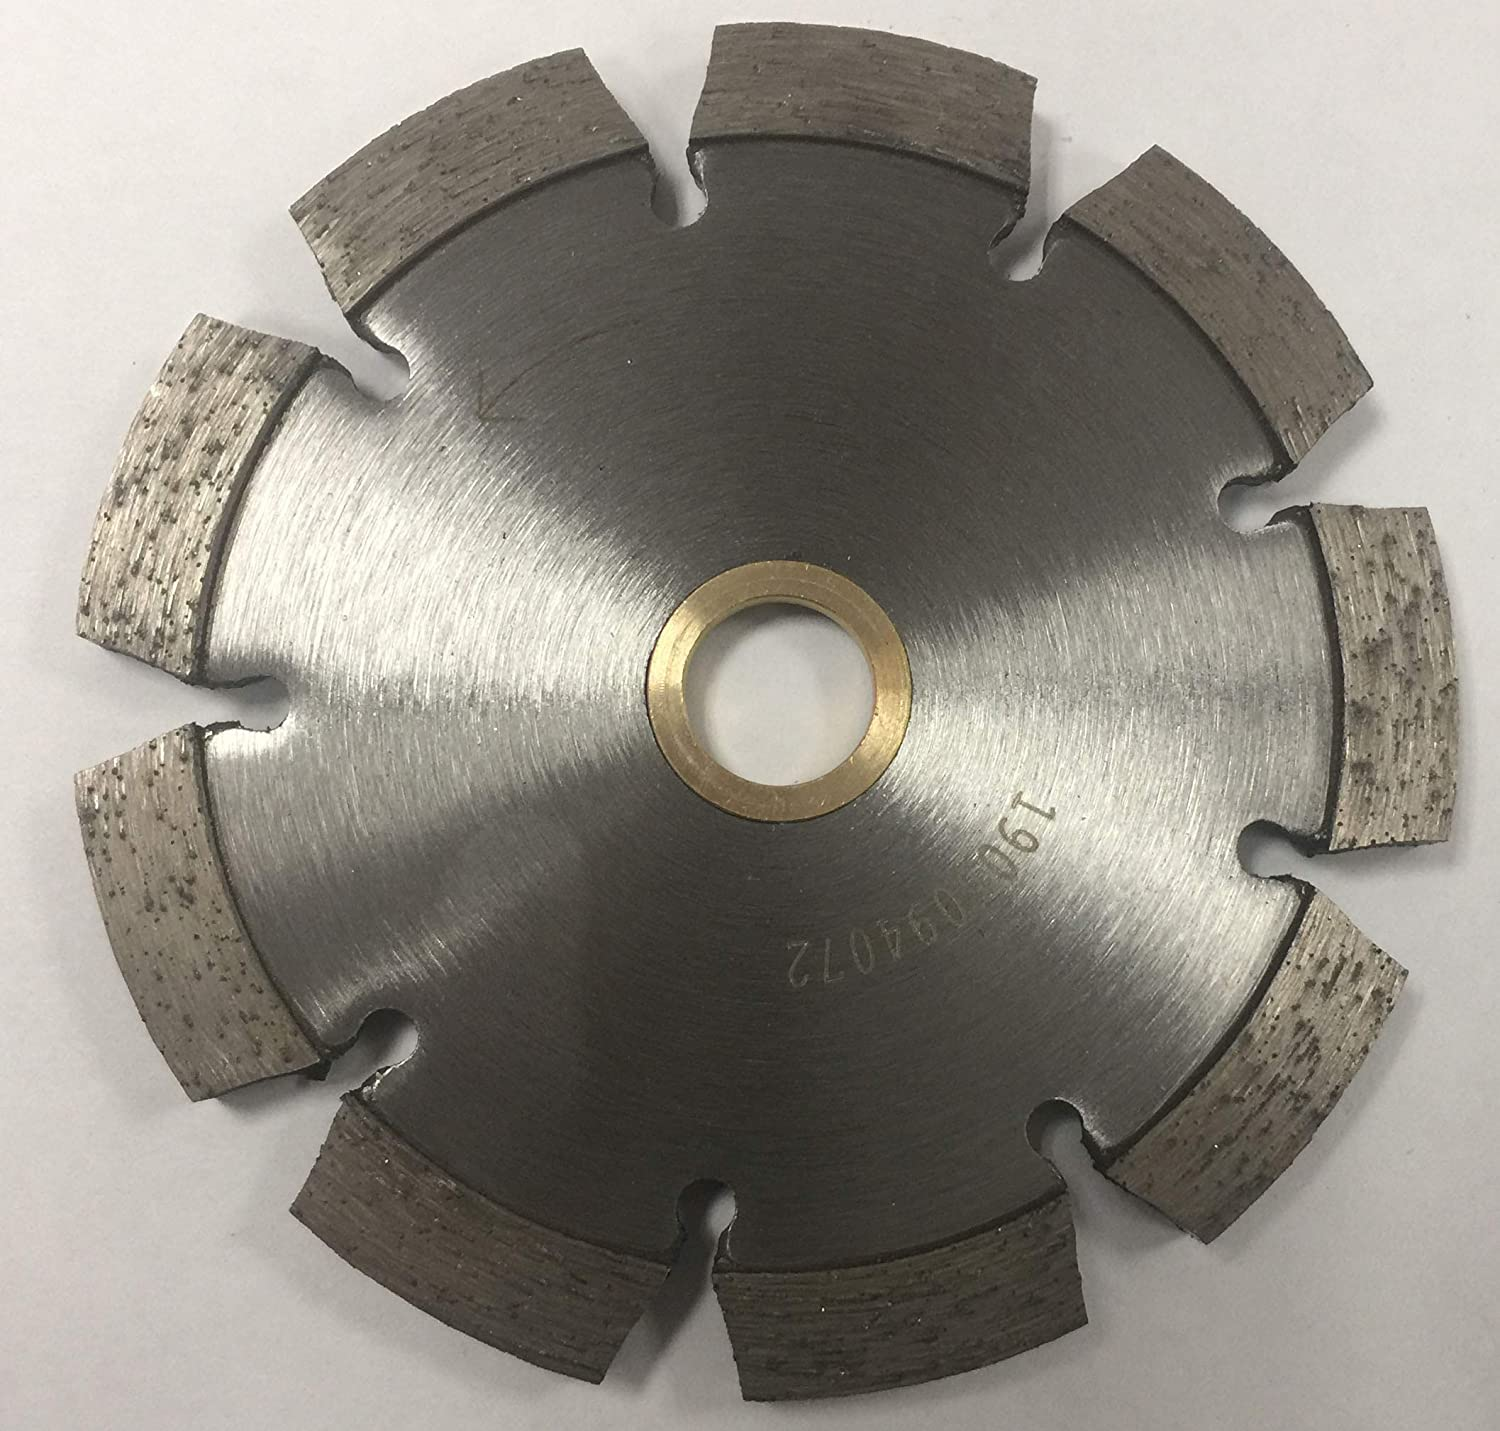 Grout Repair and Cleaning of Concrete Applications 4 Premium Laser Welded Diamond Tuck Point TuckPoint Blades for Fast Mortar Removal